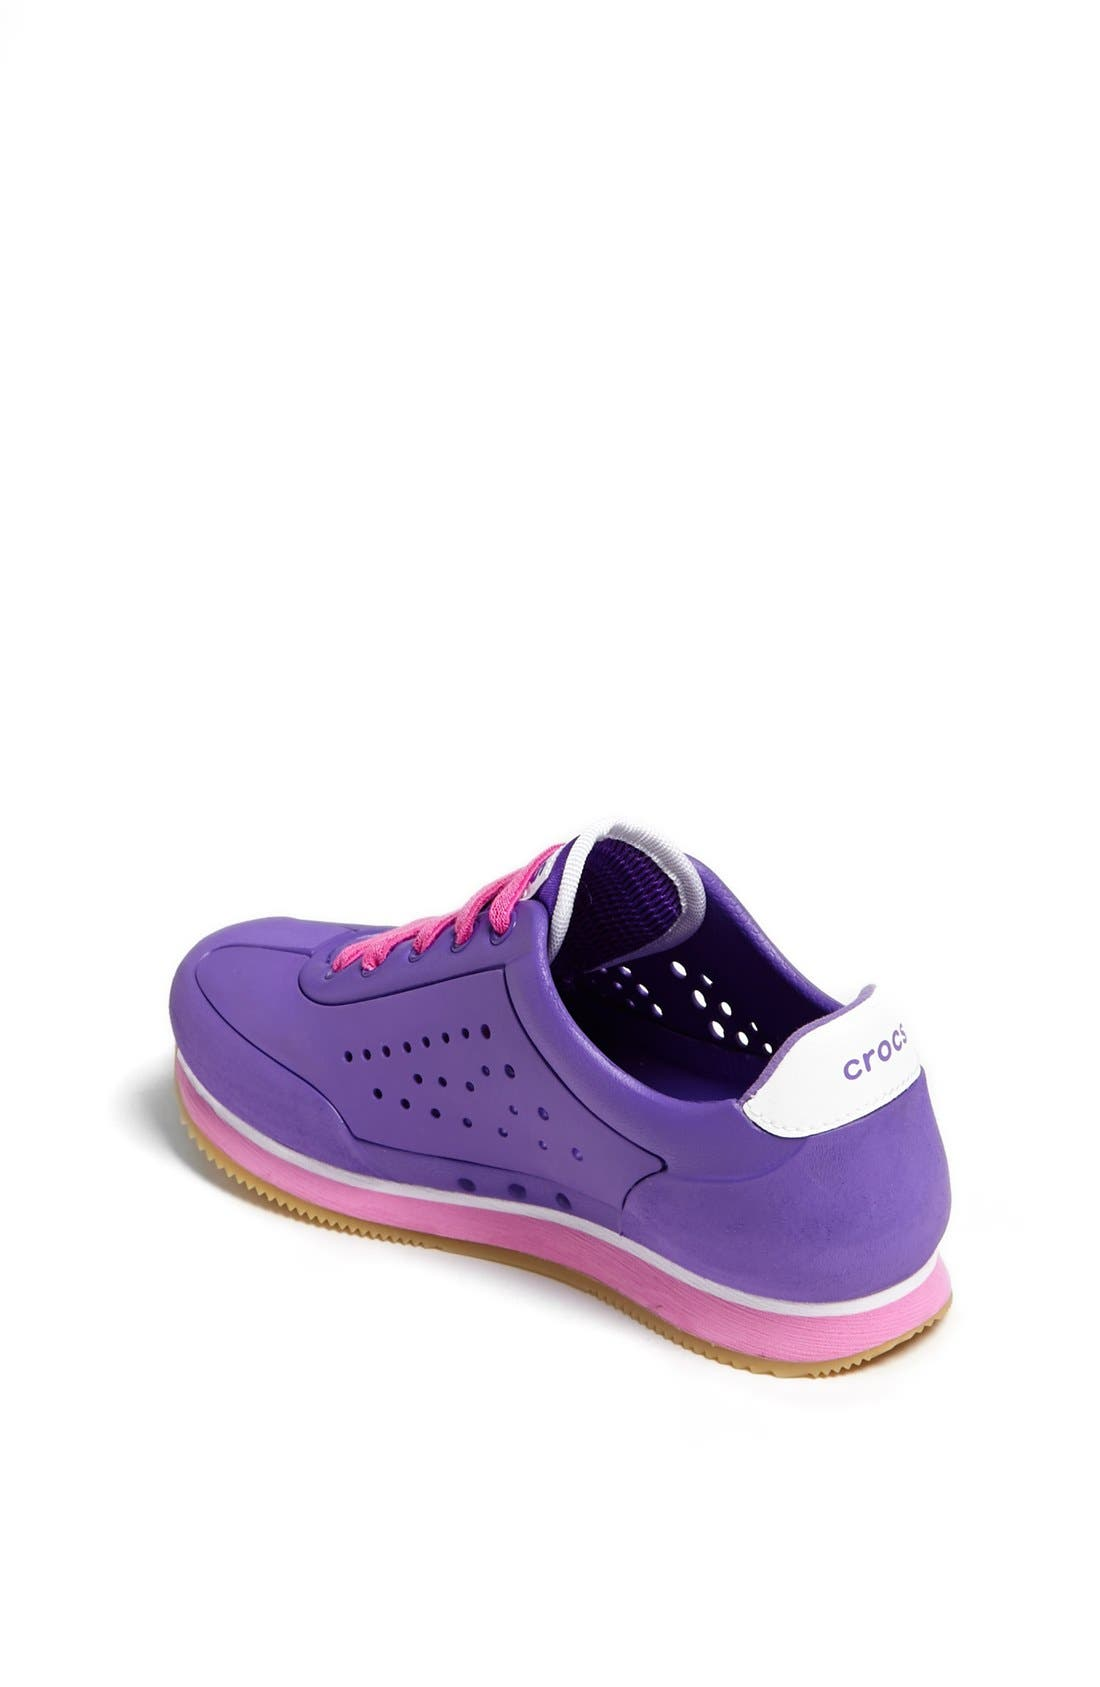 Alternate Image 2  - CROCS™ 'Retro' Sneaker (Little Kid & Big Kid)